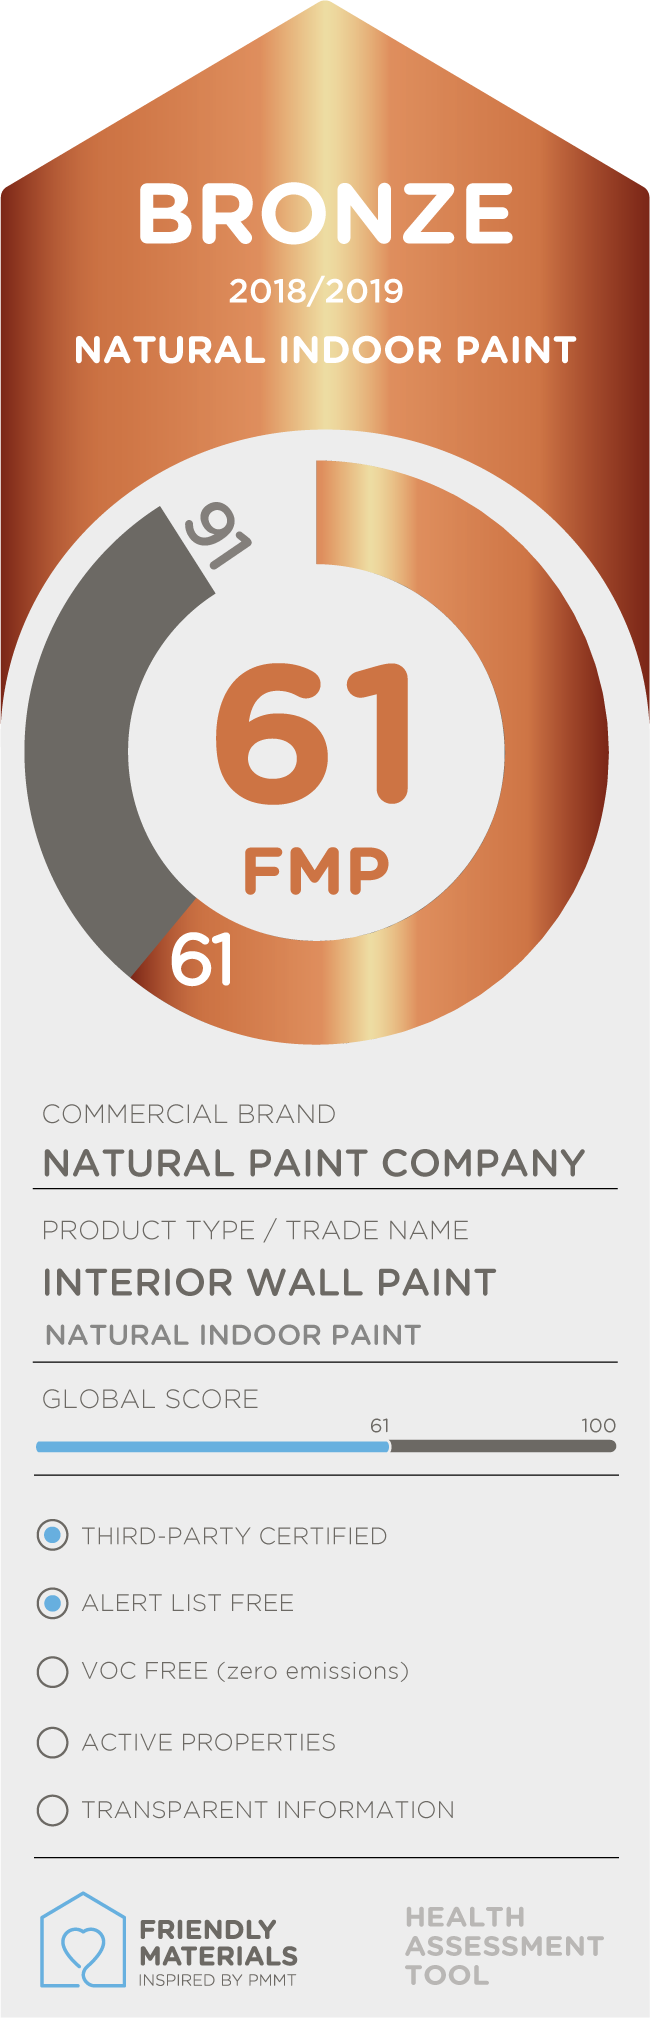 Interior Wall Paint bronze 61